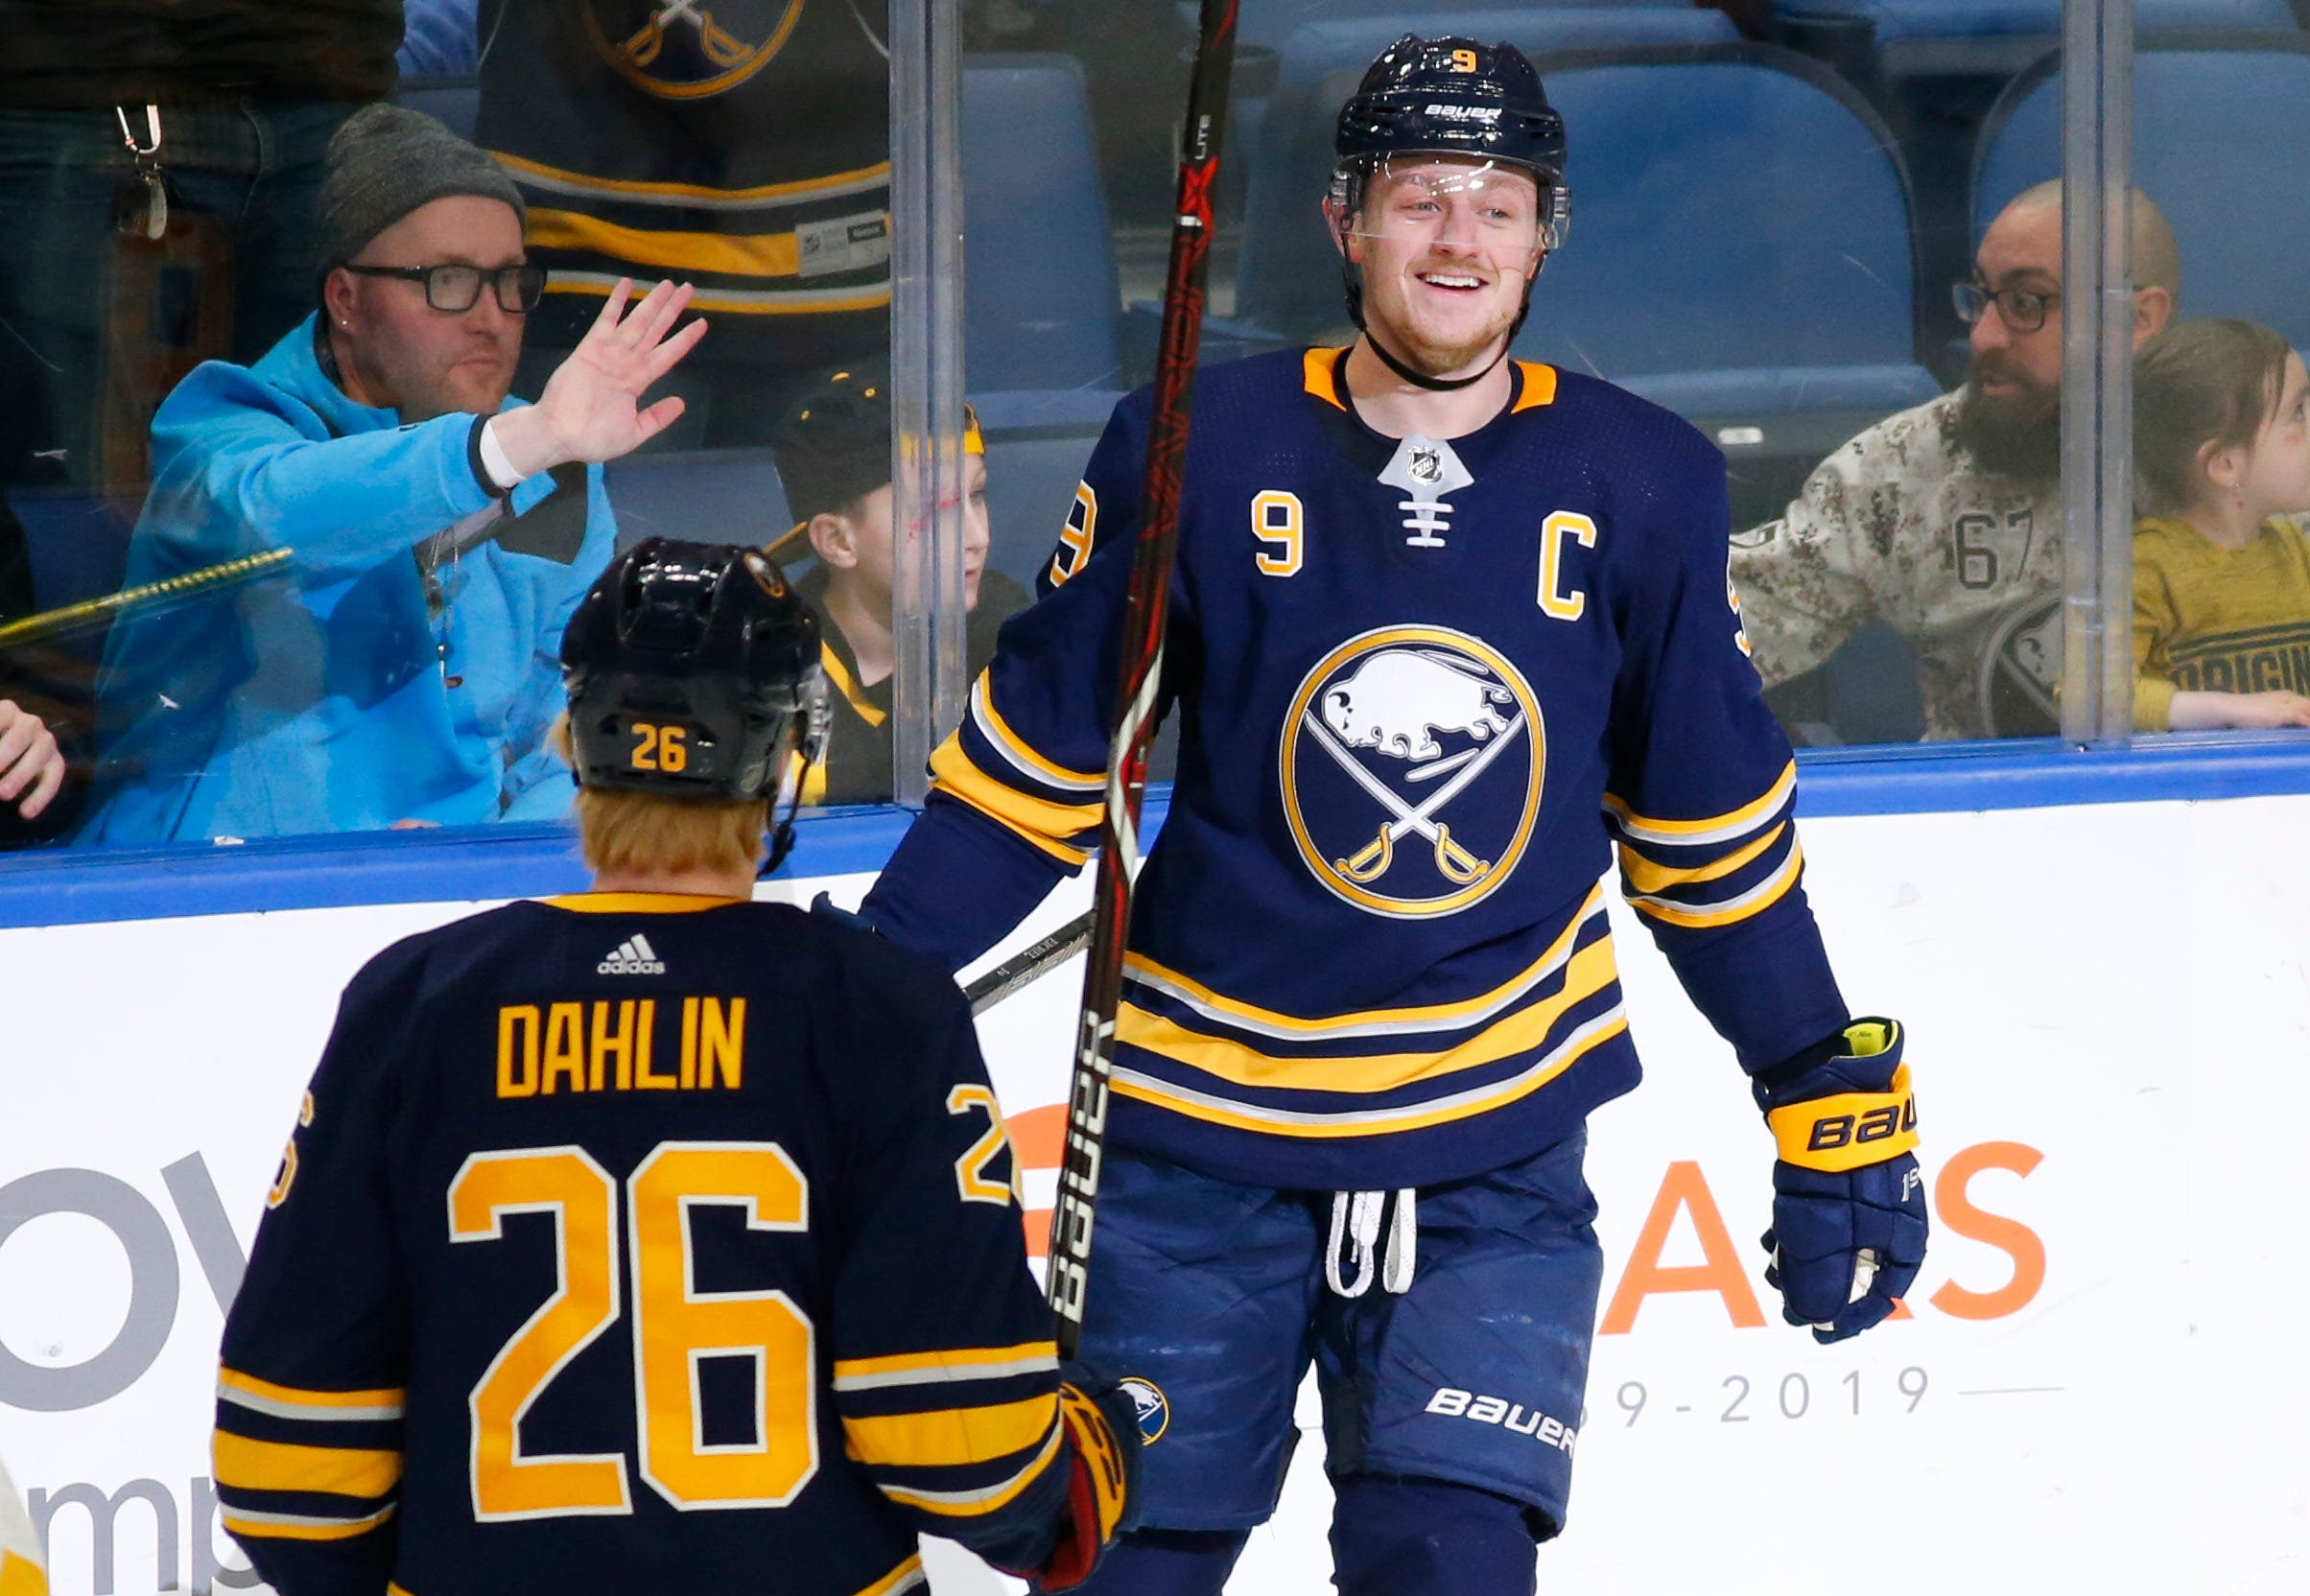 Conor Sheary scores 2 in Sabres' 4-3 OT win over Penguins